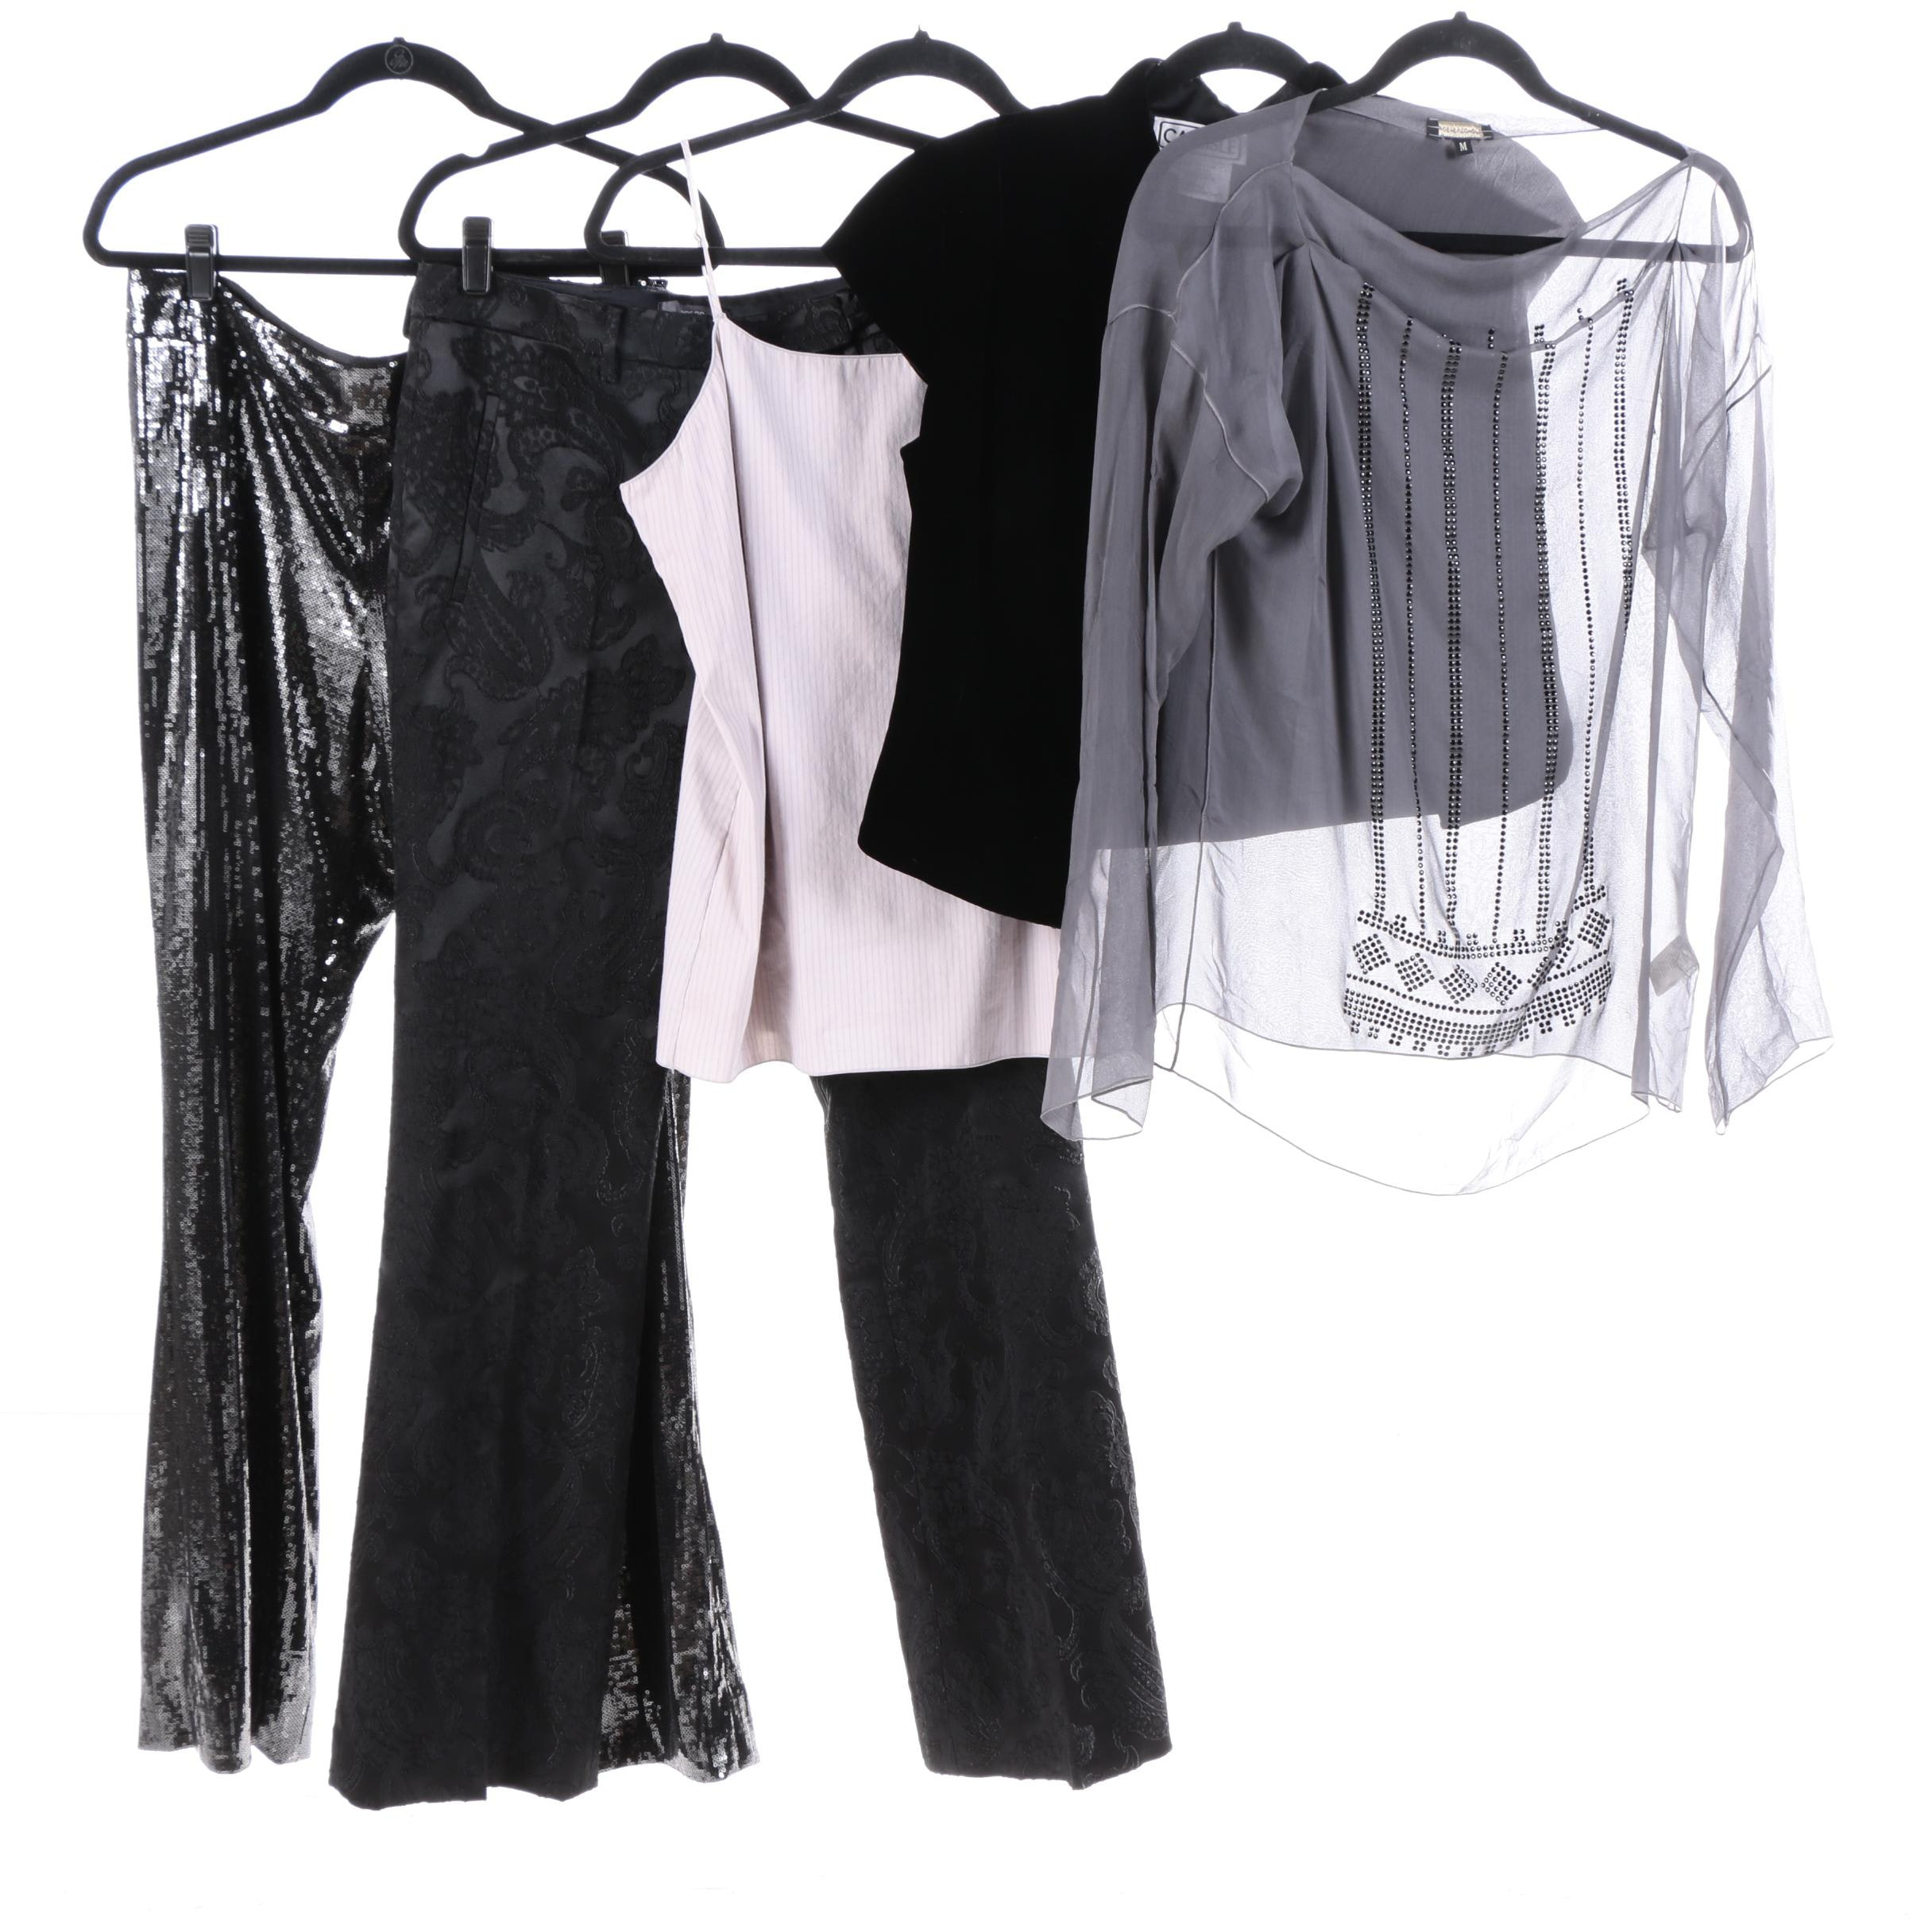 Women's Clothing Including Carlisle and Per Se